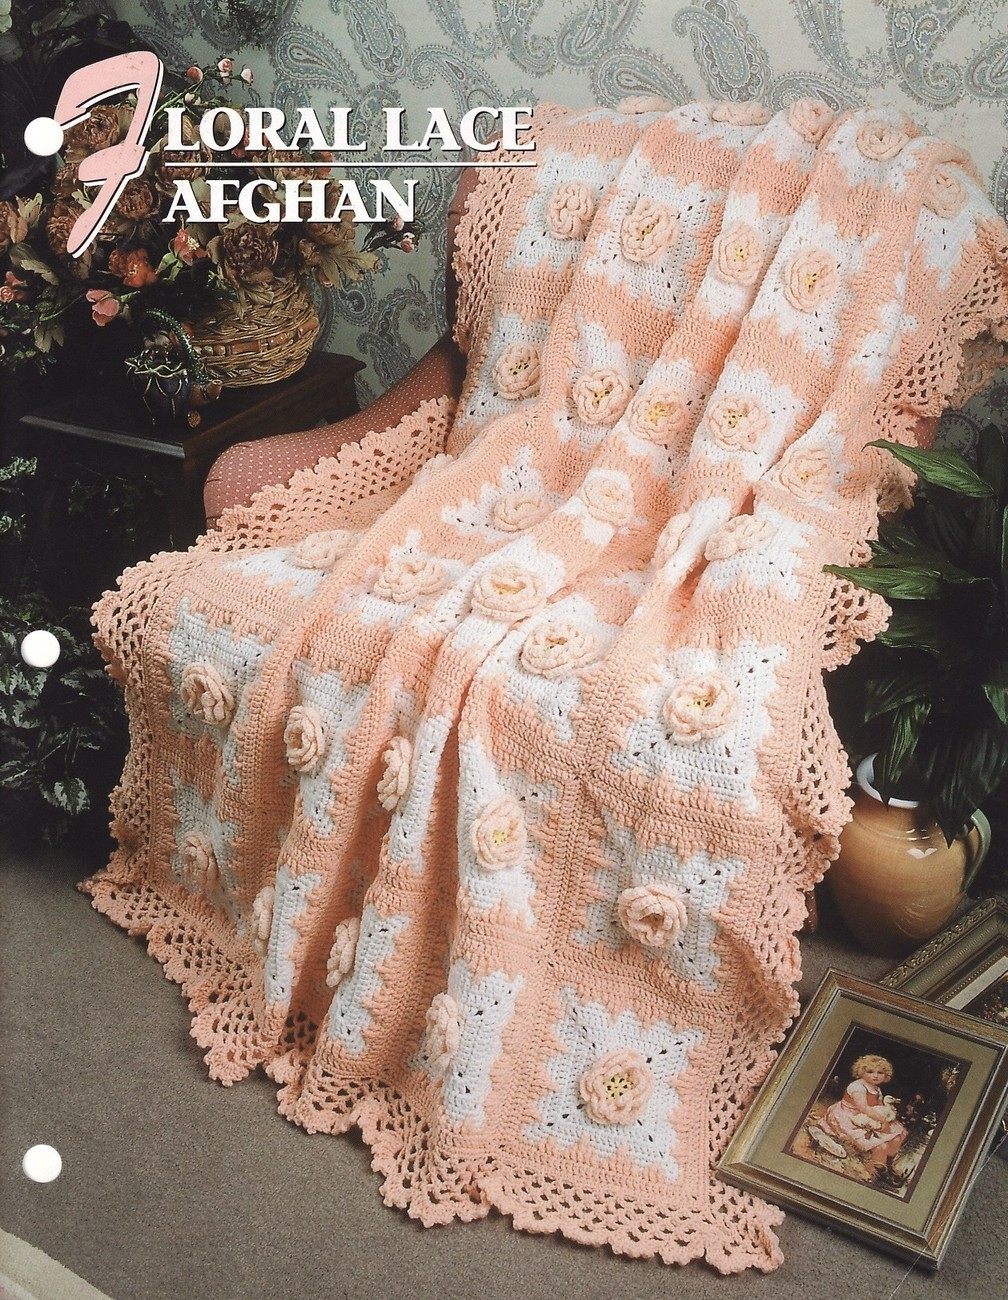 Free Victorian Lace Crochet Patterns : Floral Lace Afghan Crochet Pattern Blanket Throw Victorian ...